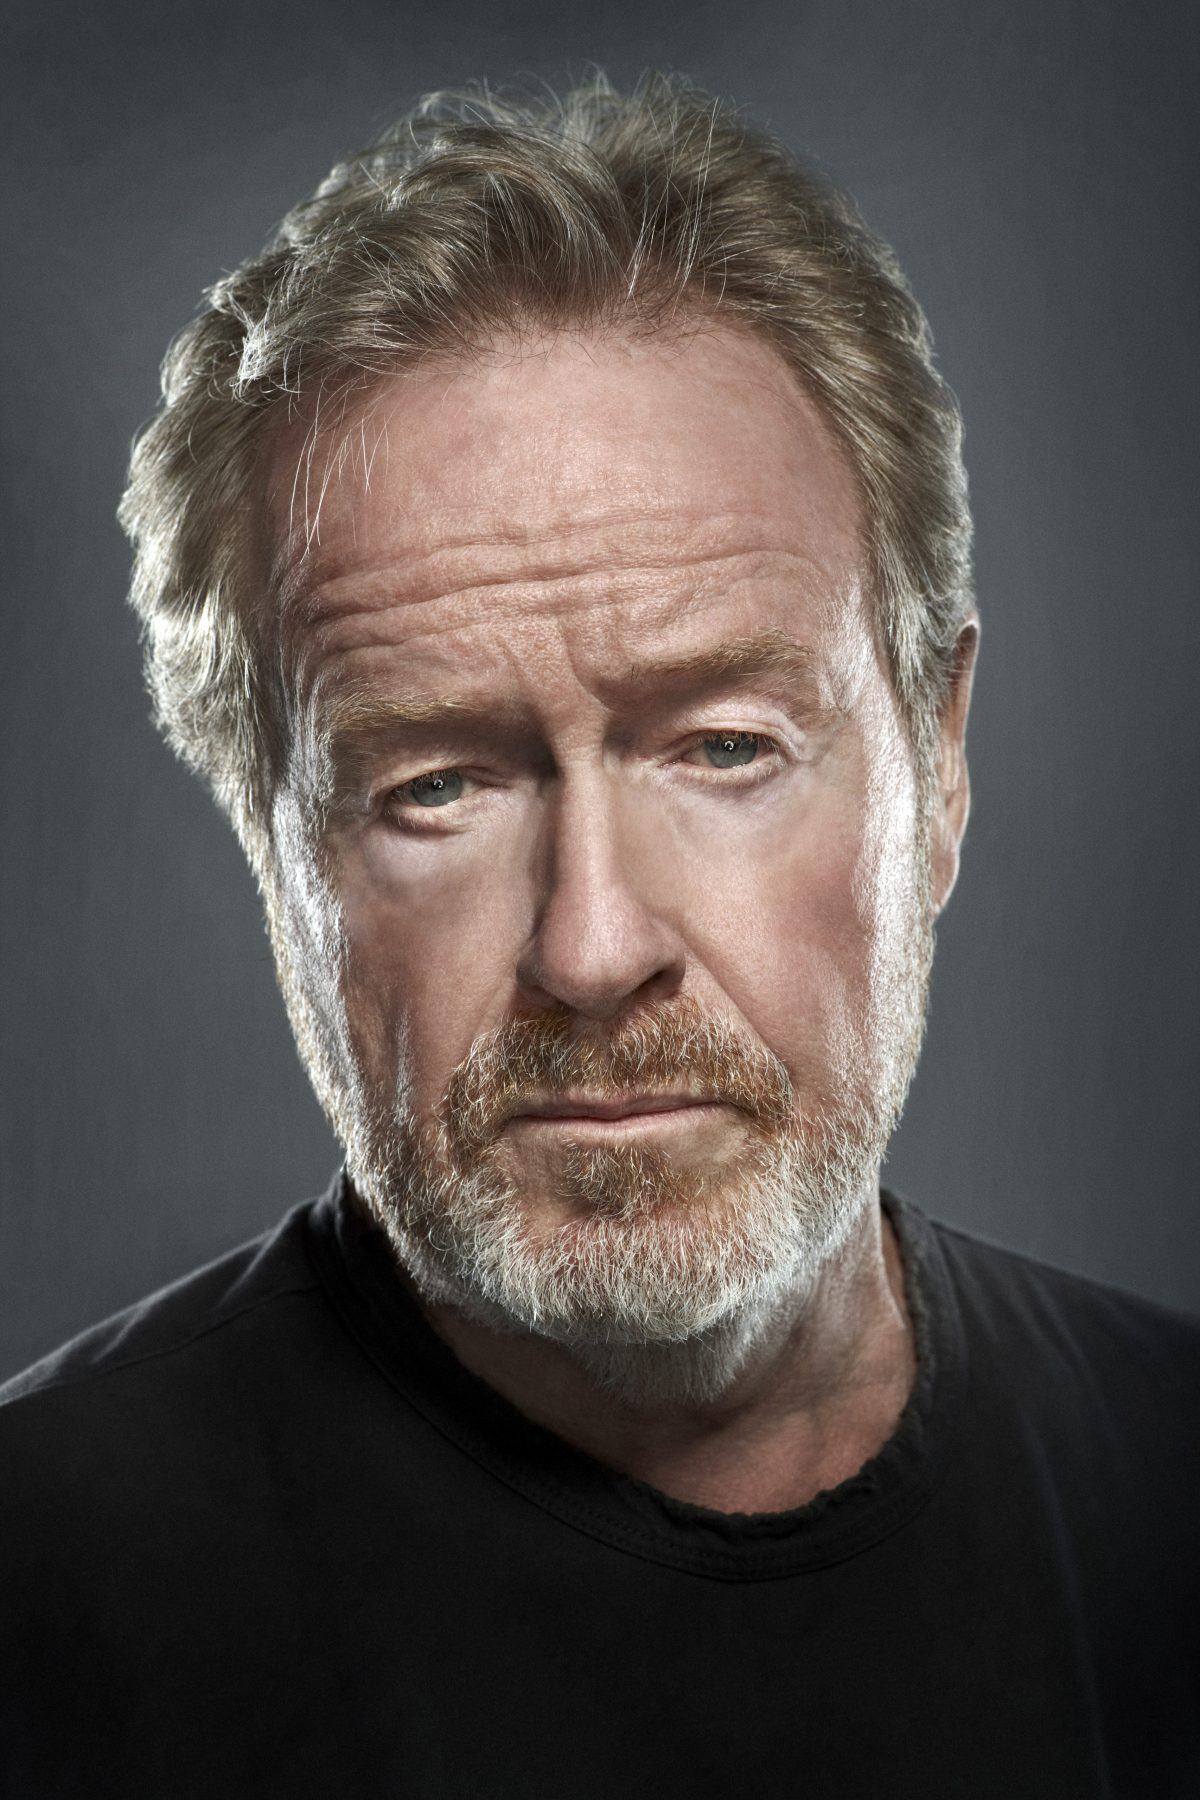 We've got some #BAFTA news for you today dear readers, it's been announced that The British Academy of Film and Television Arts (BAFTA) will honour Sir #RidleyScott with the Fellowship at the #EE British #Academy #Film #Awards on Sunday 18 February.